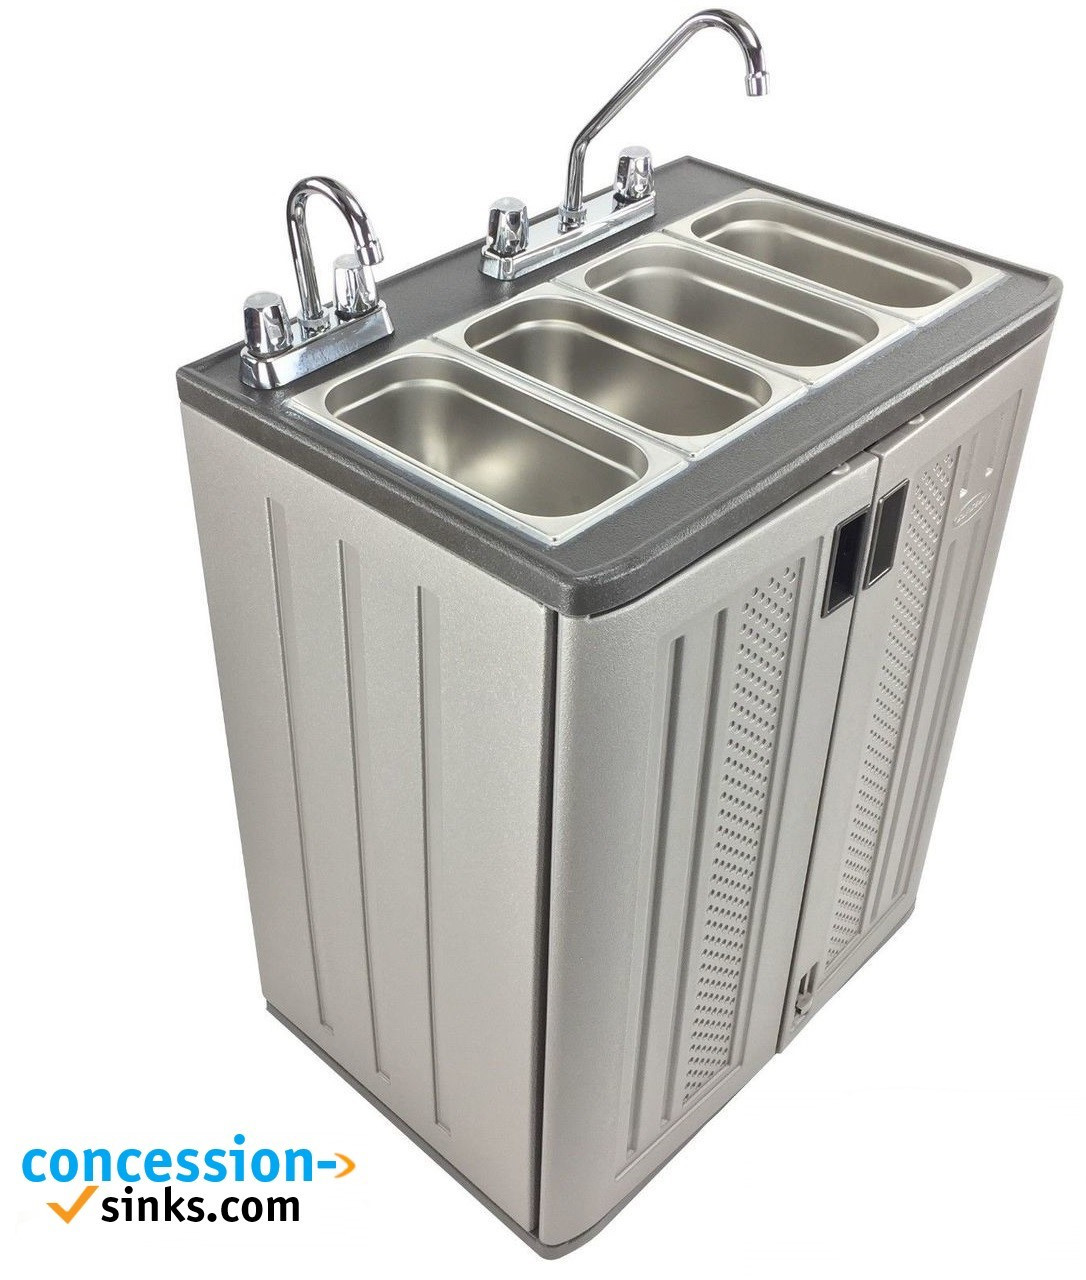 mobile concession sink portable food truck trailer 4 compartment hand wash hot 35 0090